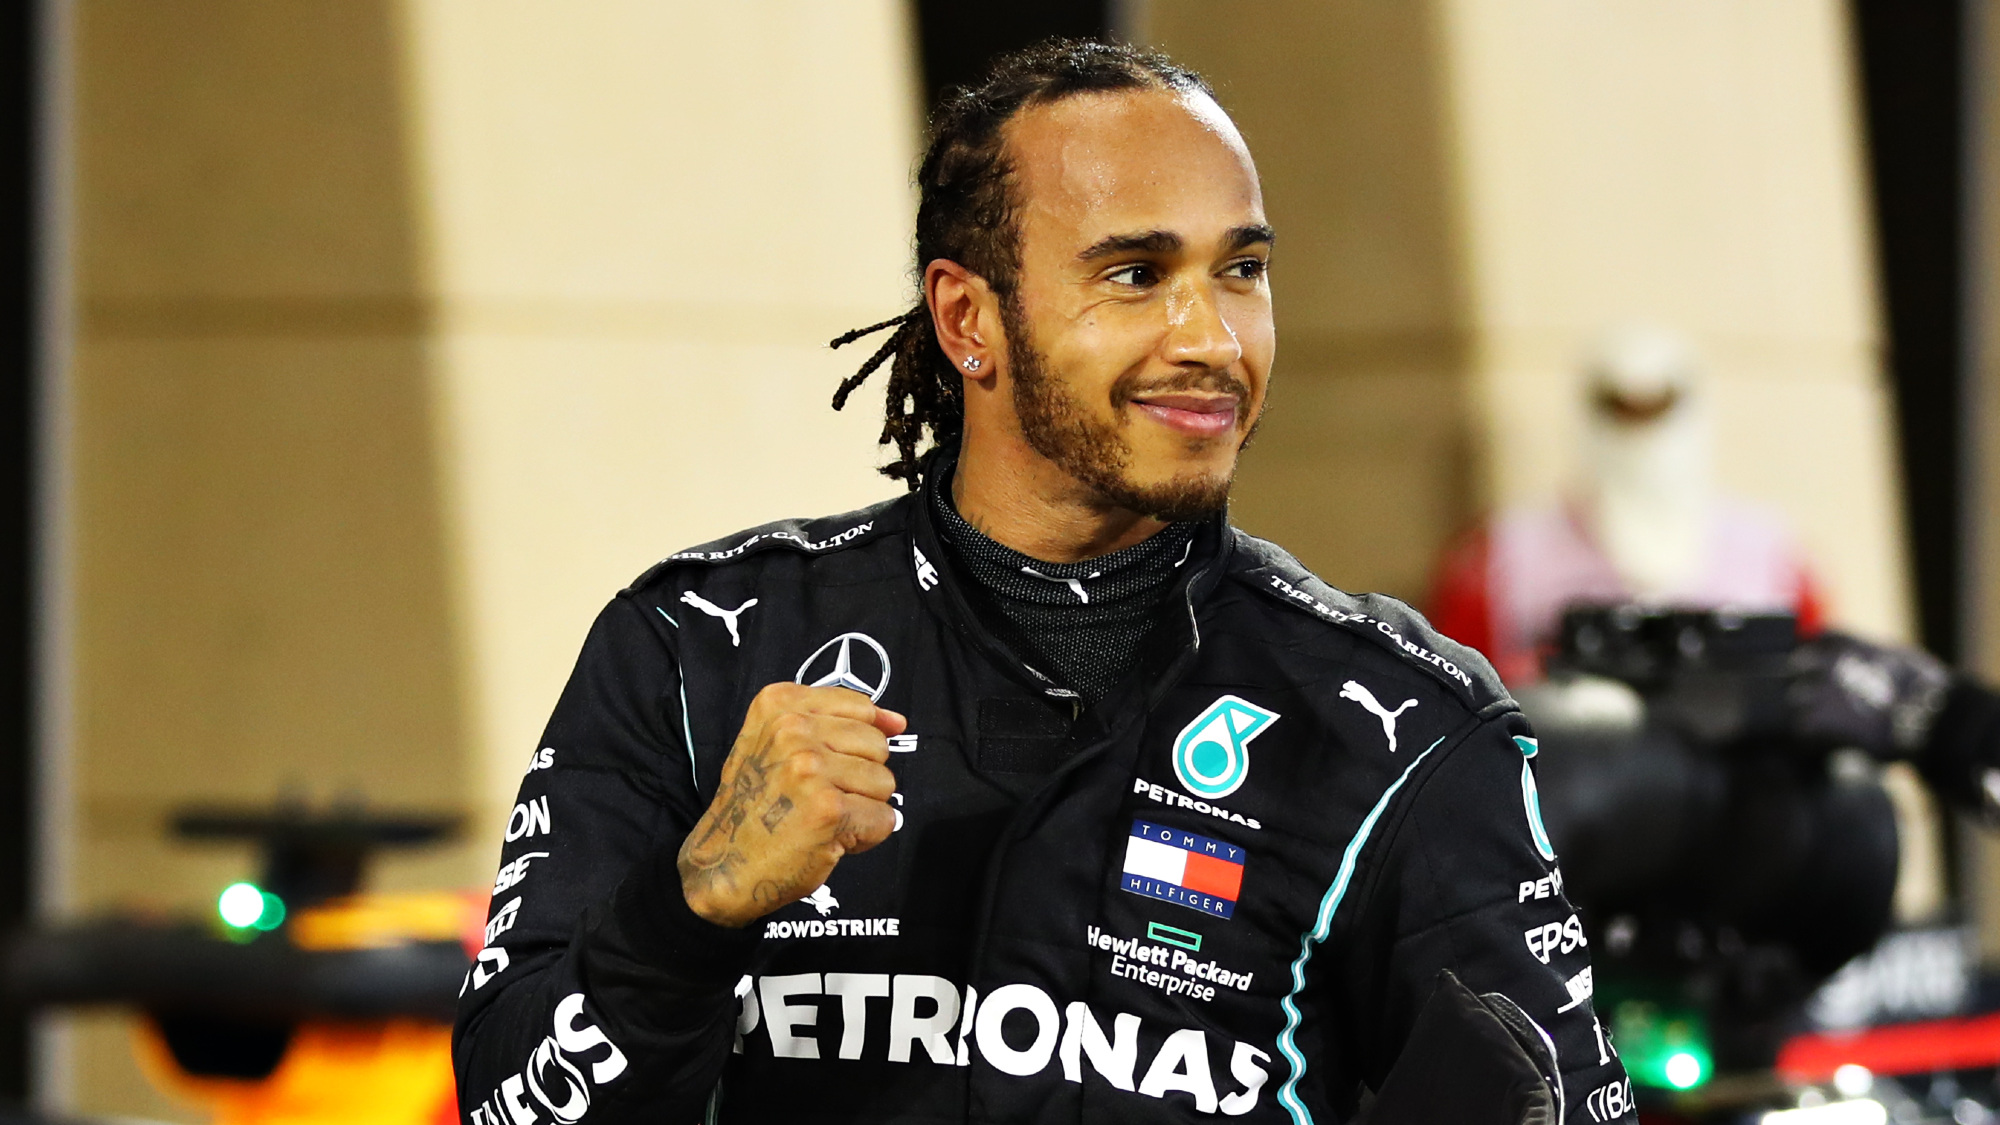 Lewis Hamilton signs new one-year Mercedes deal for 2021 F1 season